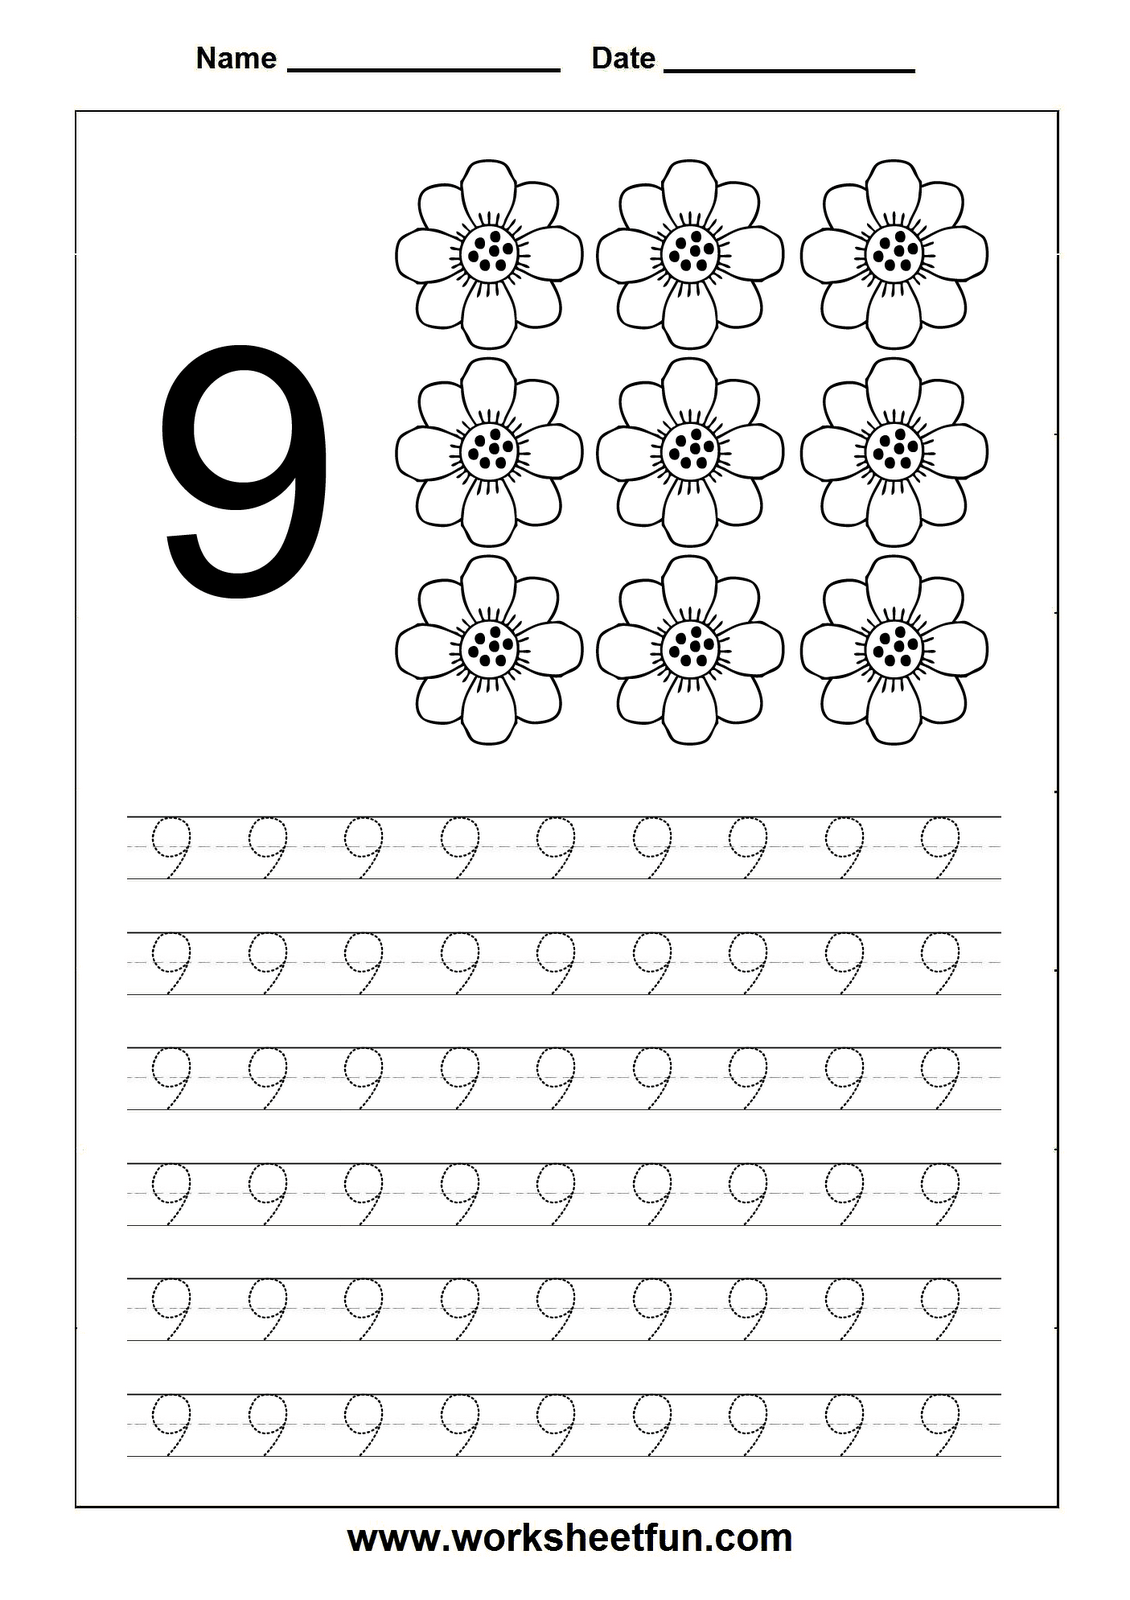 Homeschooling Number Tracing